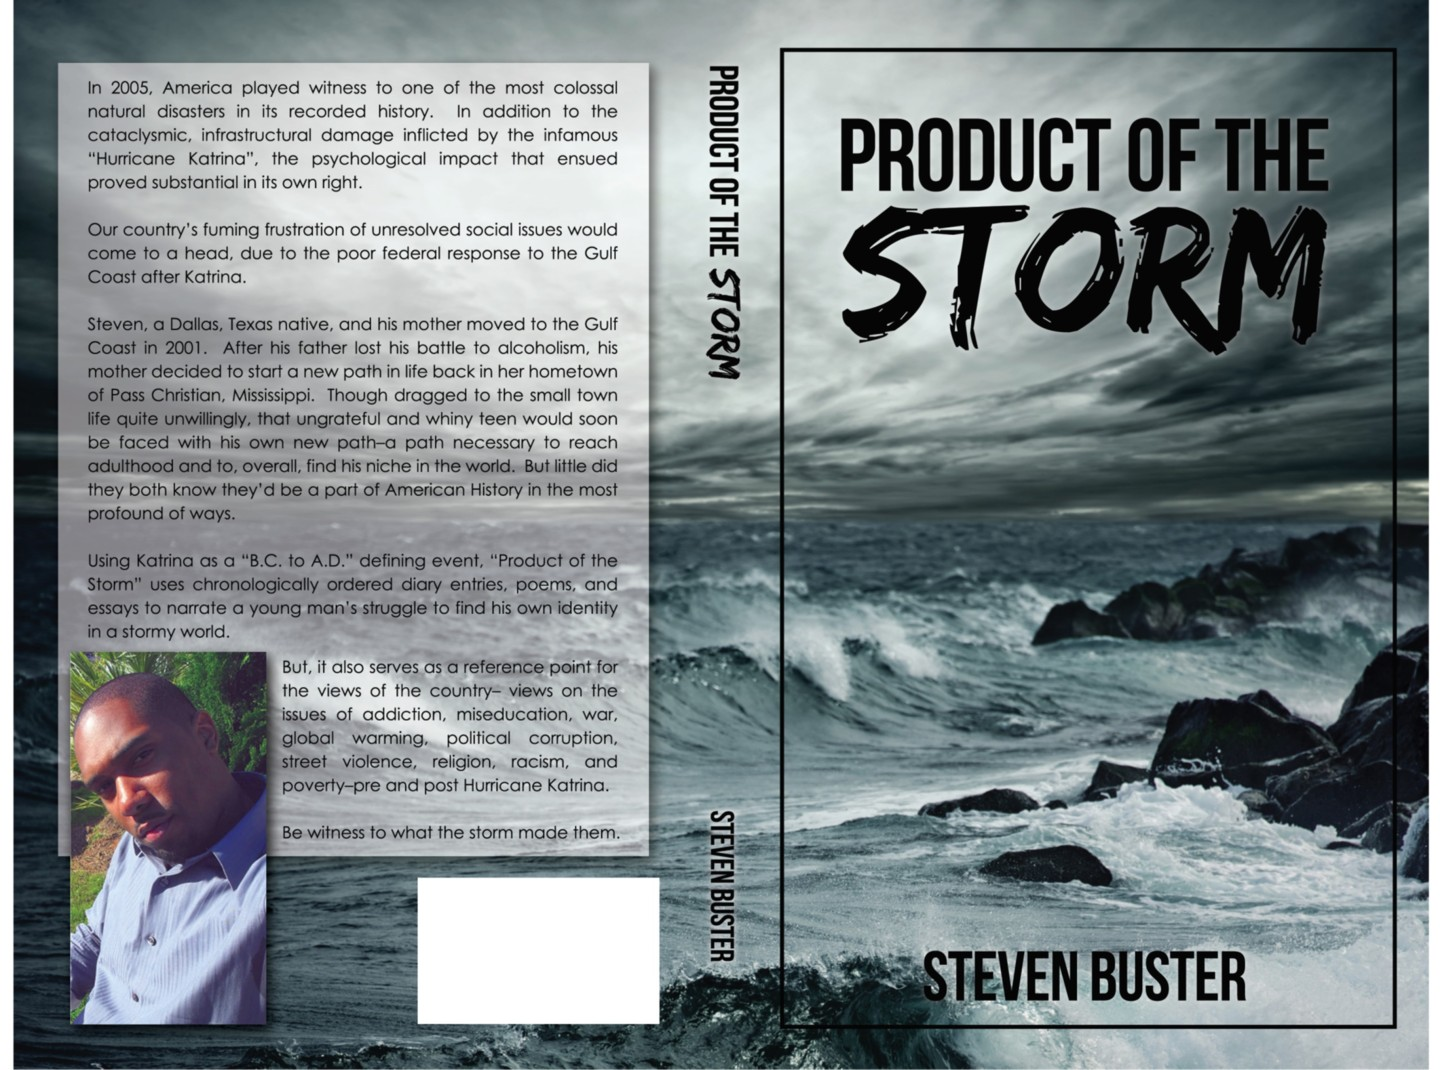 federalism and hurricane katrina essay The storm is an analysis of the events that took place before, during and after hurricane katrina the storm interviews some of the individuals involved in.